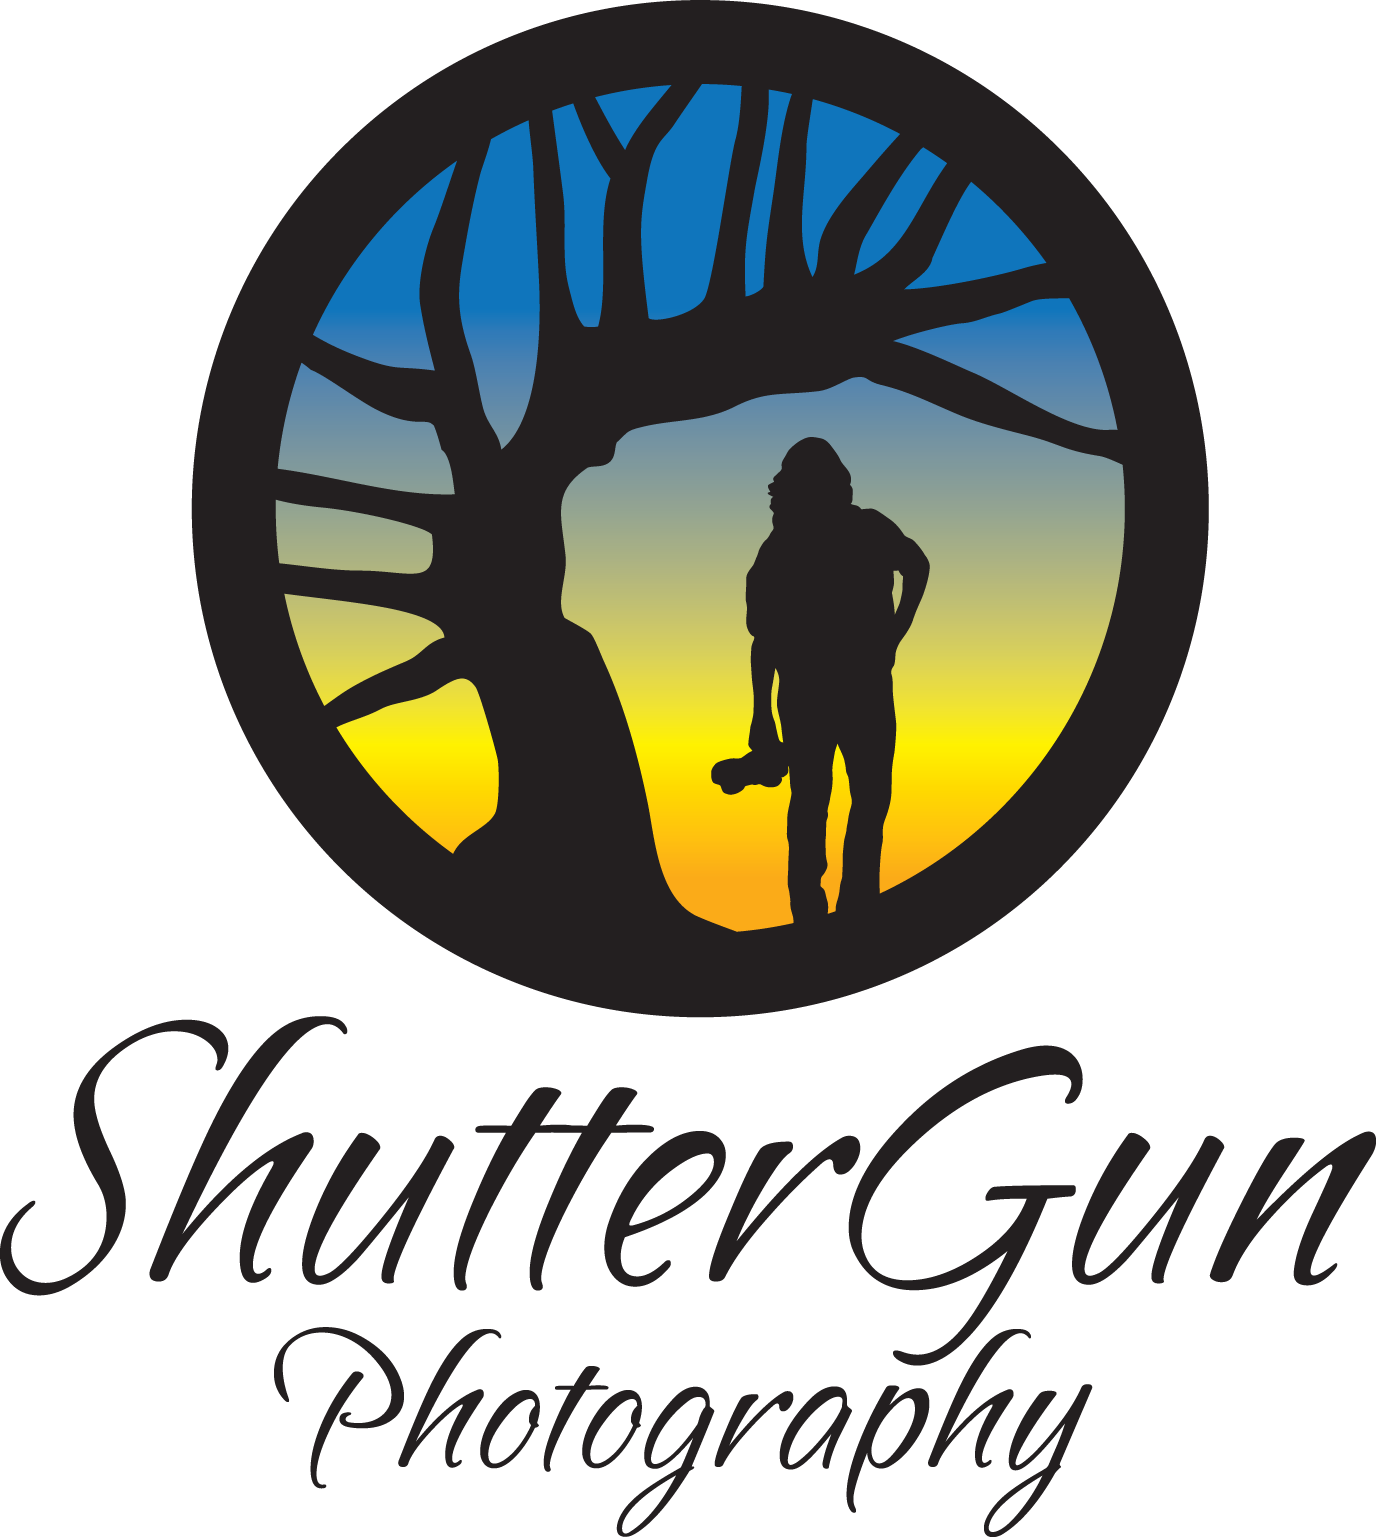 ShutterGun Photography